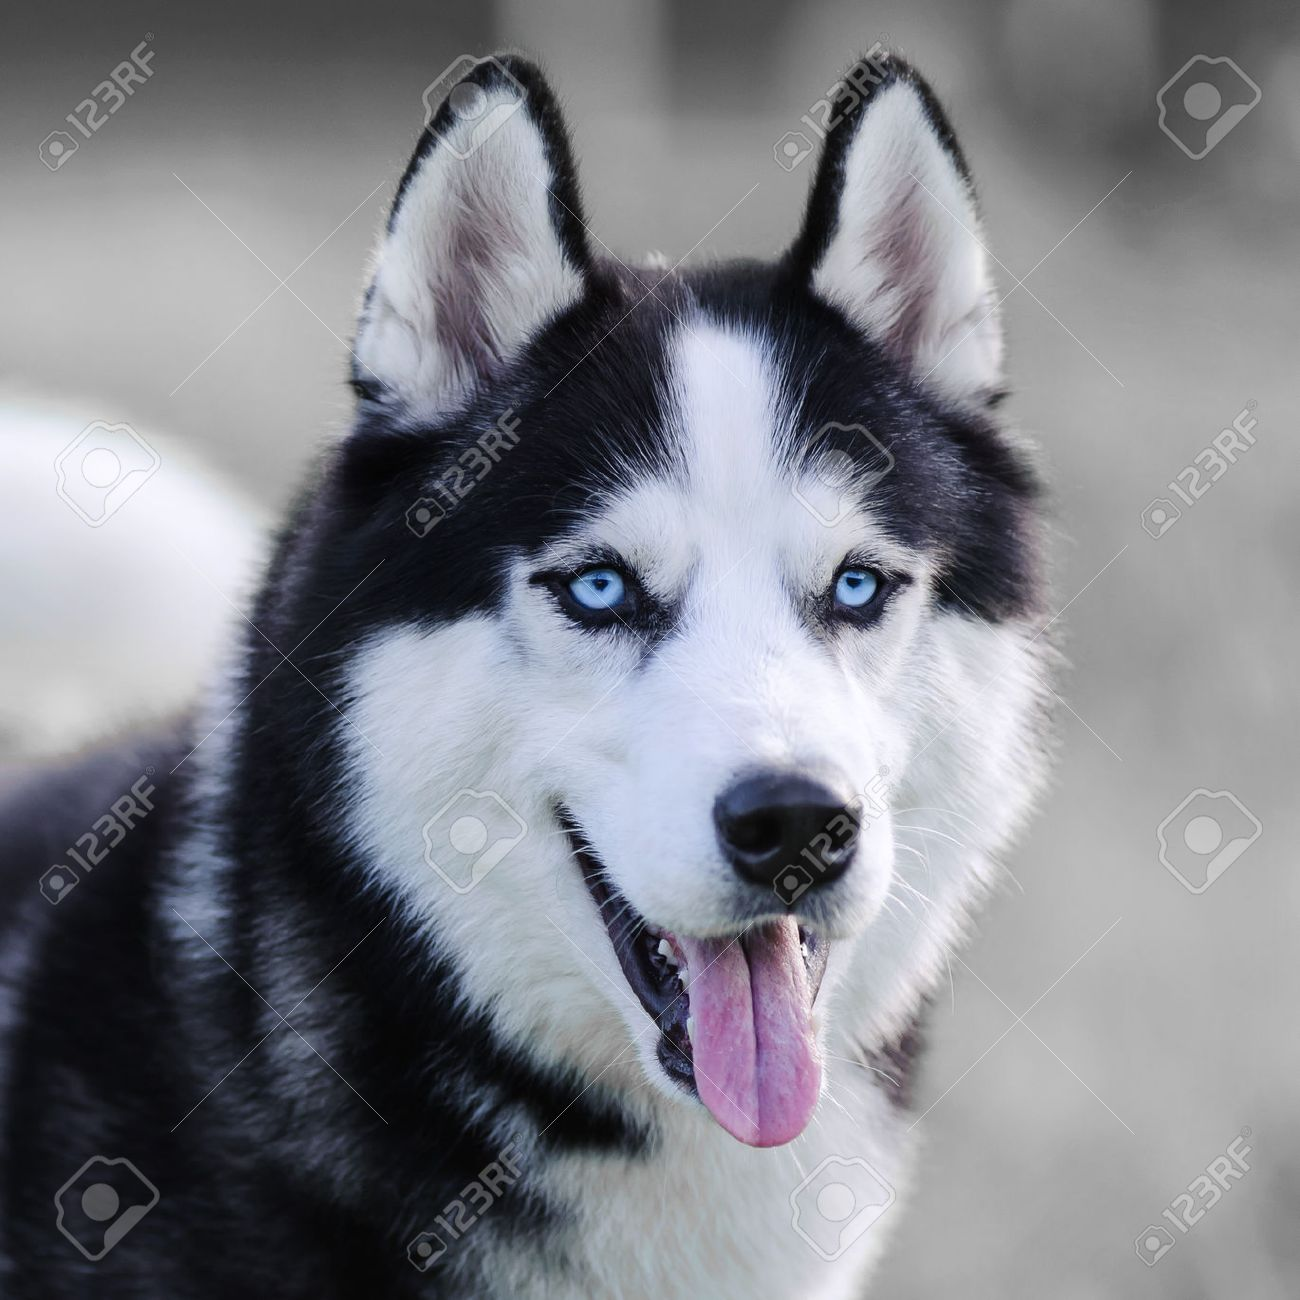 Siberian Husky Dog With Blue Eyes Outdoor Closeup Stock Photo